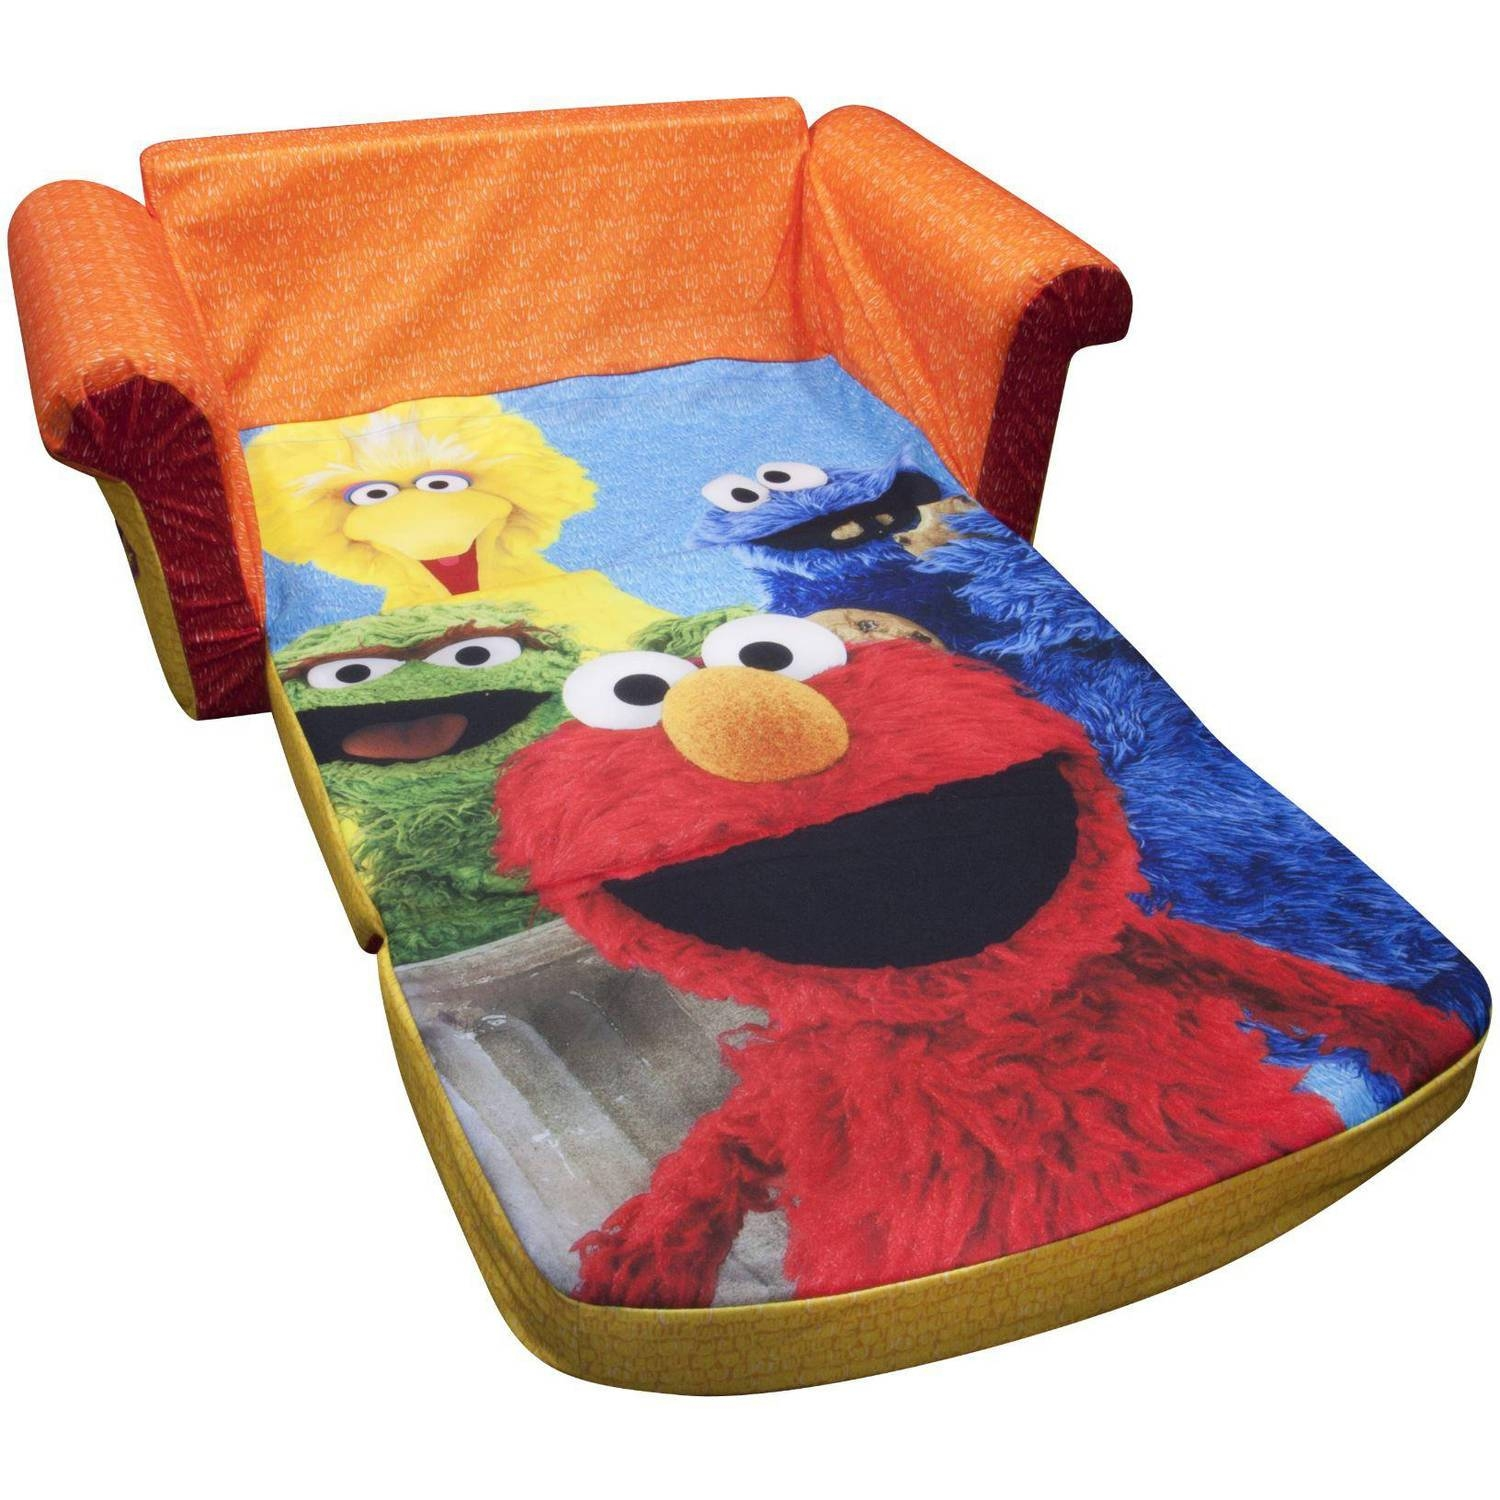 Marshmallow 2-In-1 Flip Open Sofa, Sesame Street's Elmo - Walmart throughout Elmo Flip Open Sofas (Image 7 of 15)